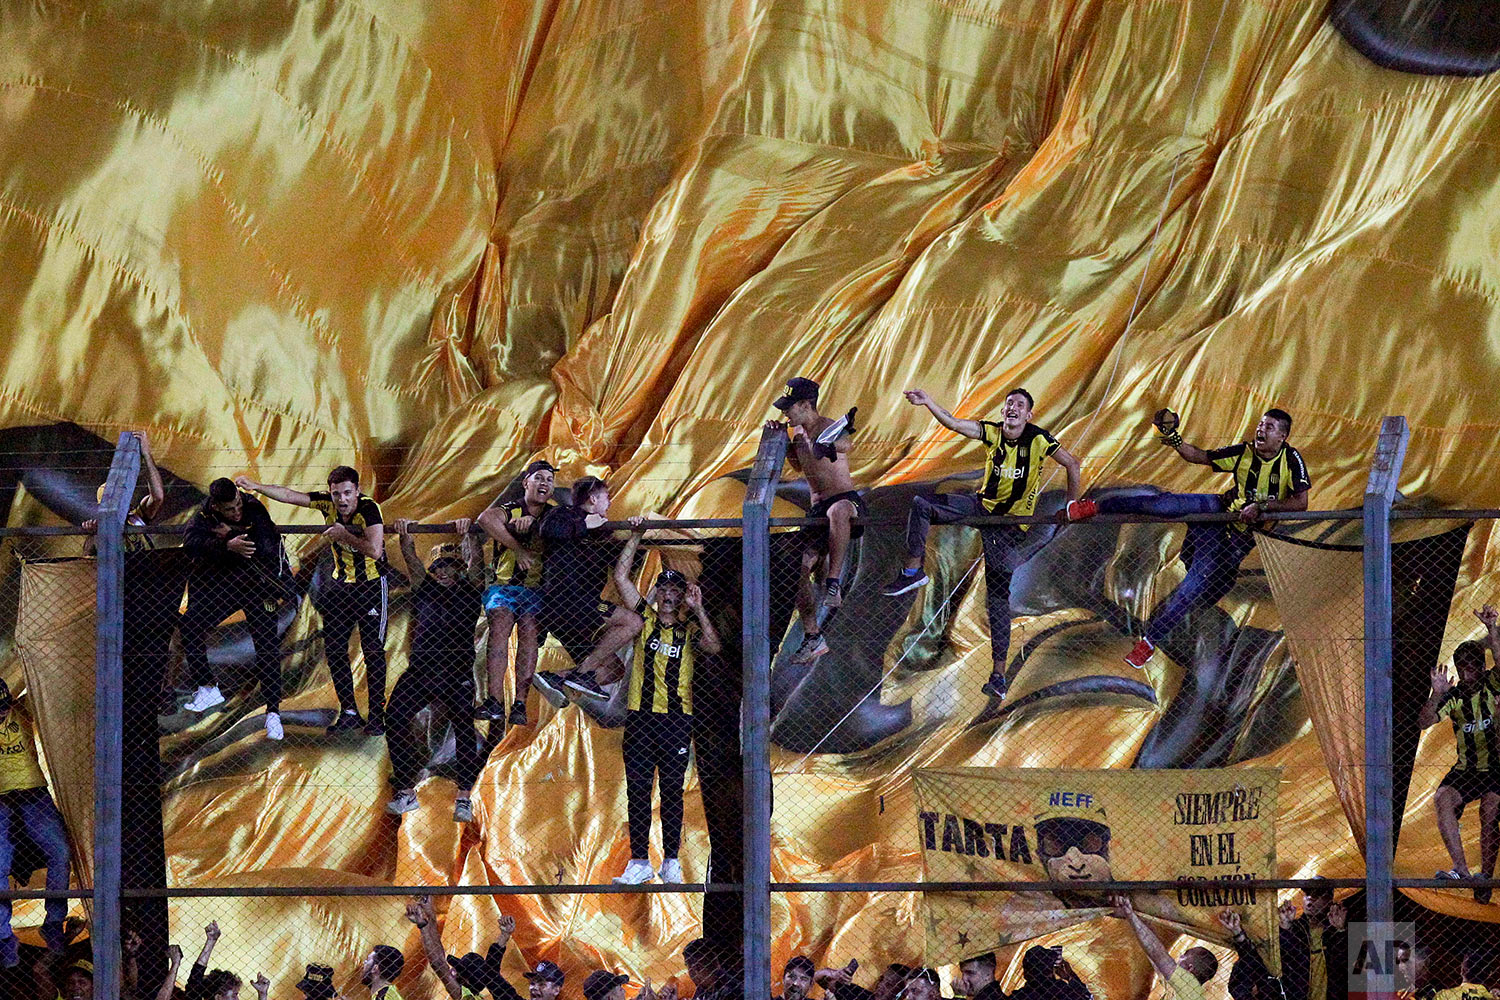 In this April 4, 2018 photo, Uruguay's Penarol fans cheer before the start of a Copa Libertadores soccer match against Argentina's Atletico Tucuman in Montevideo, Uruguay. (AP Photo/Matilde Campodonico)